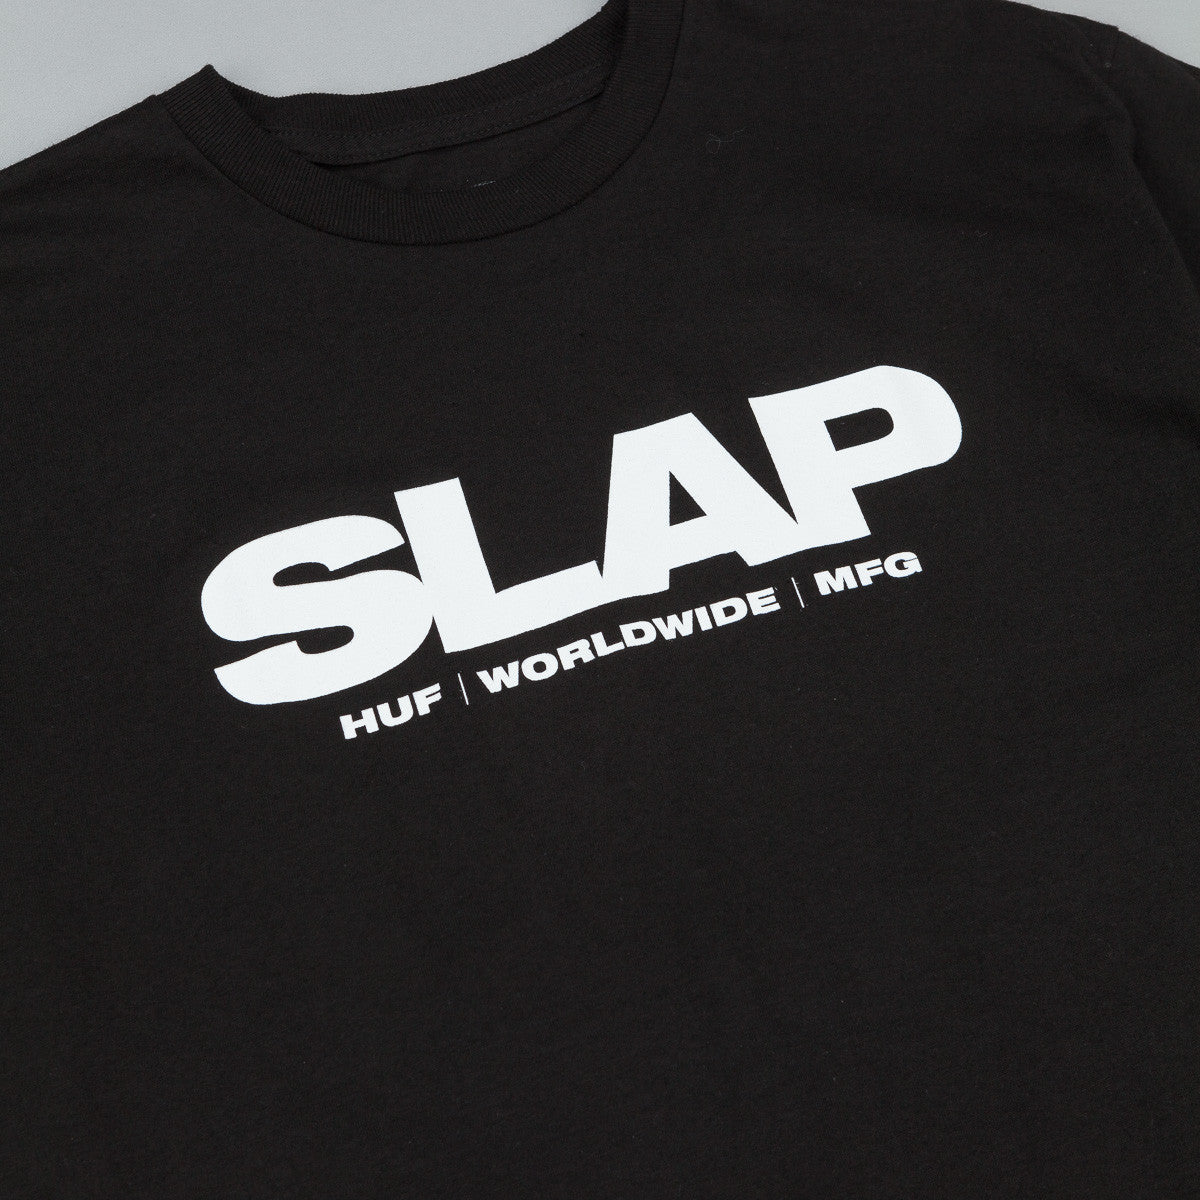 HUF X Slap T-Shirt - Black